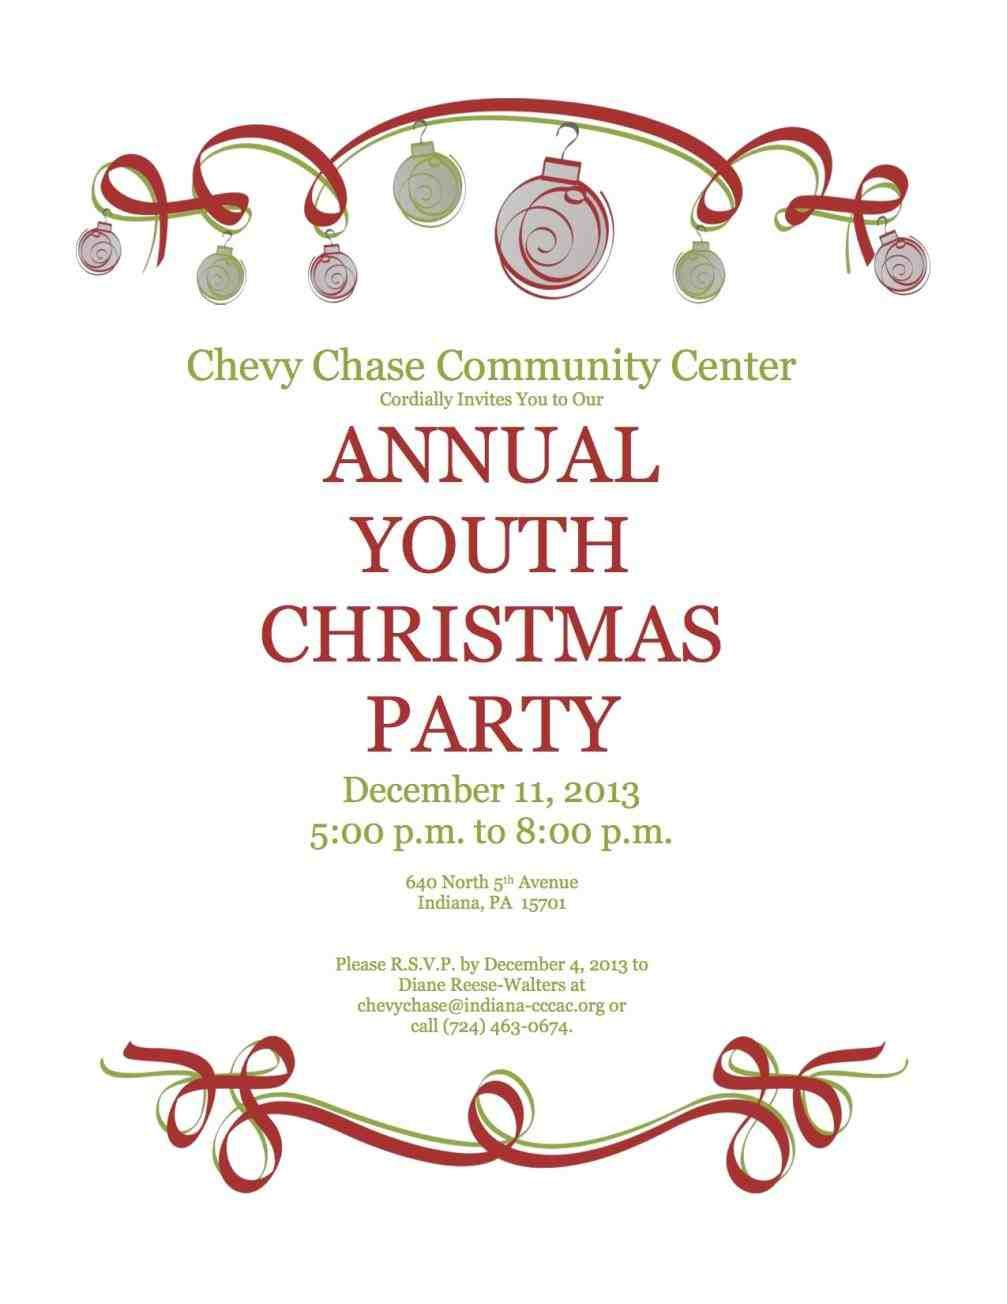 New Post company christmas party invite | Decors Ideas | Pinterest